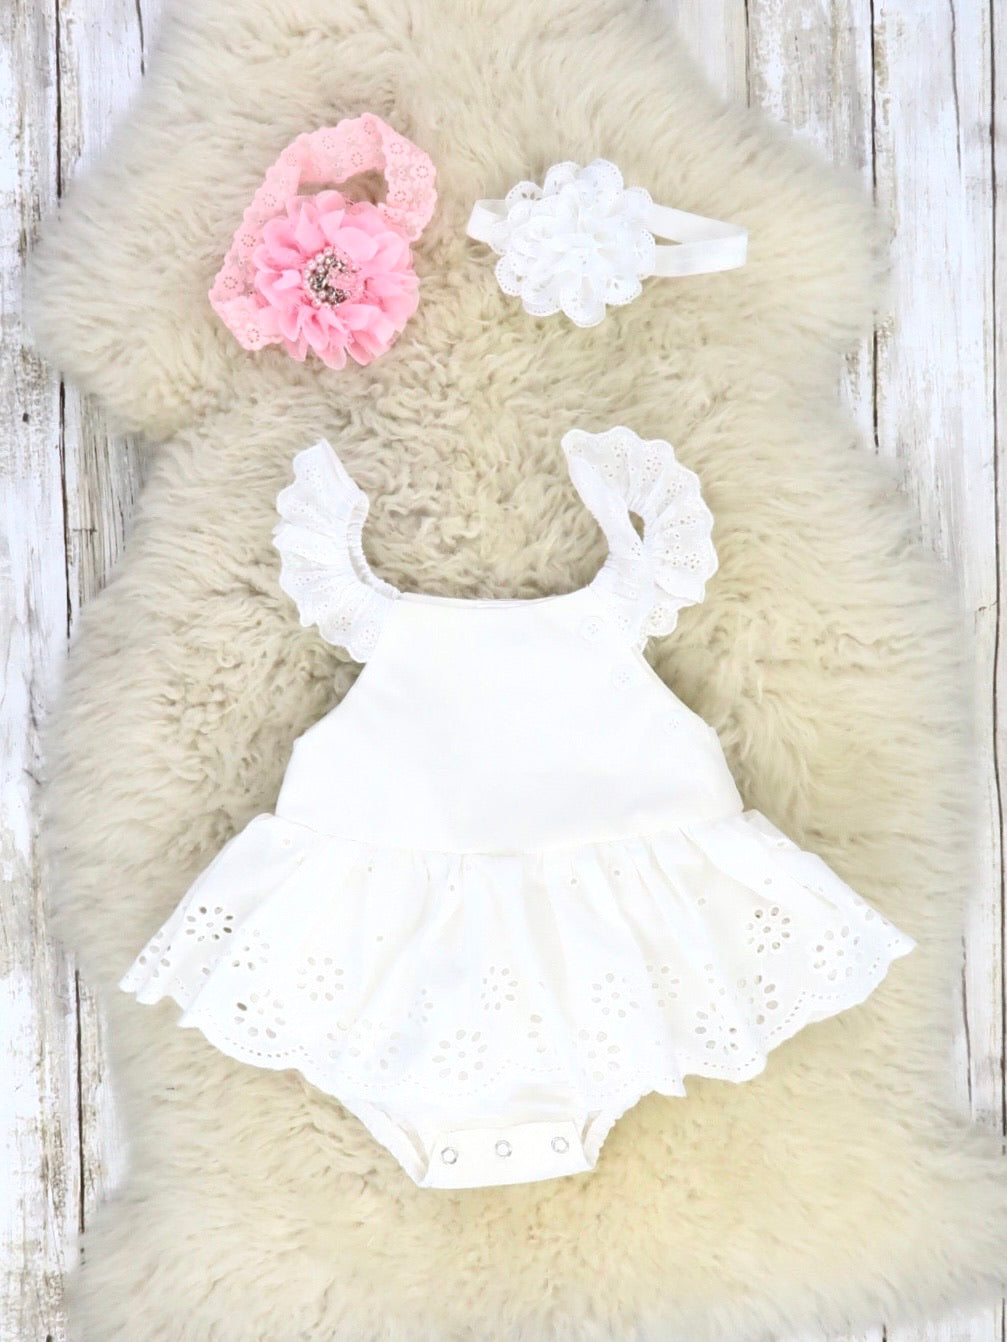 White Cotton Eyelet Lace Ruffle Romper